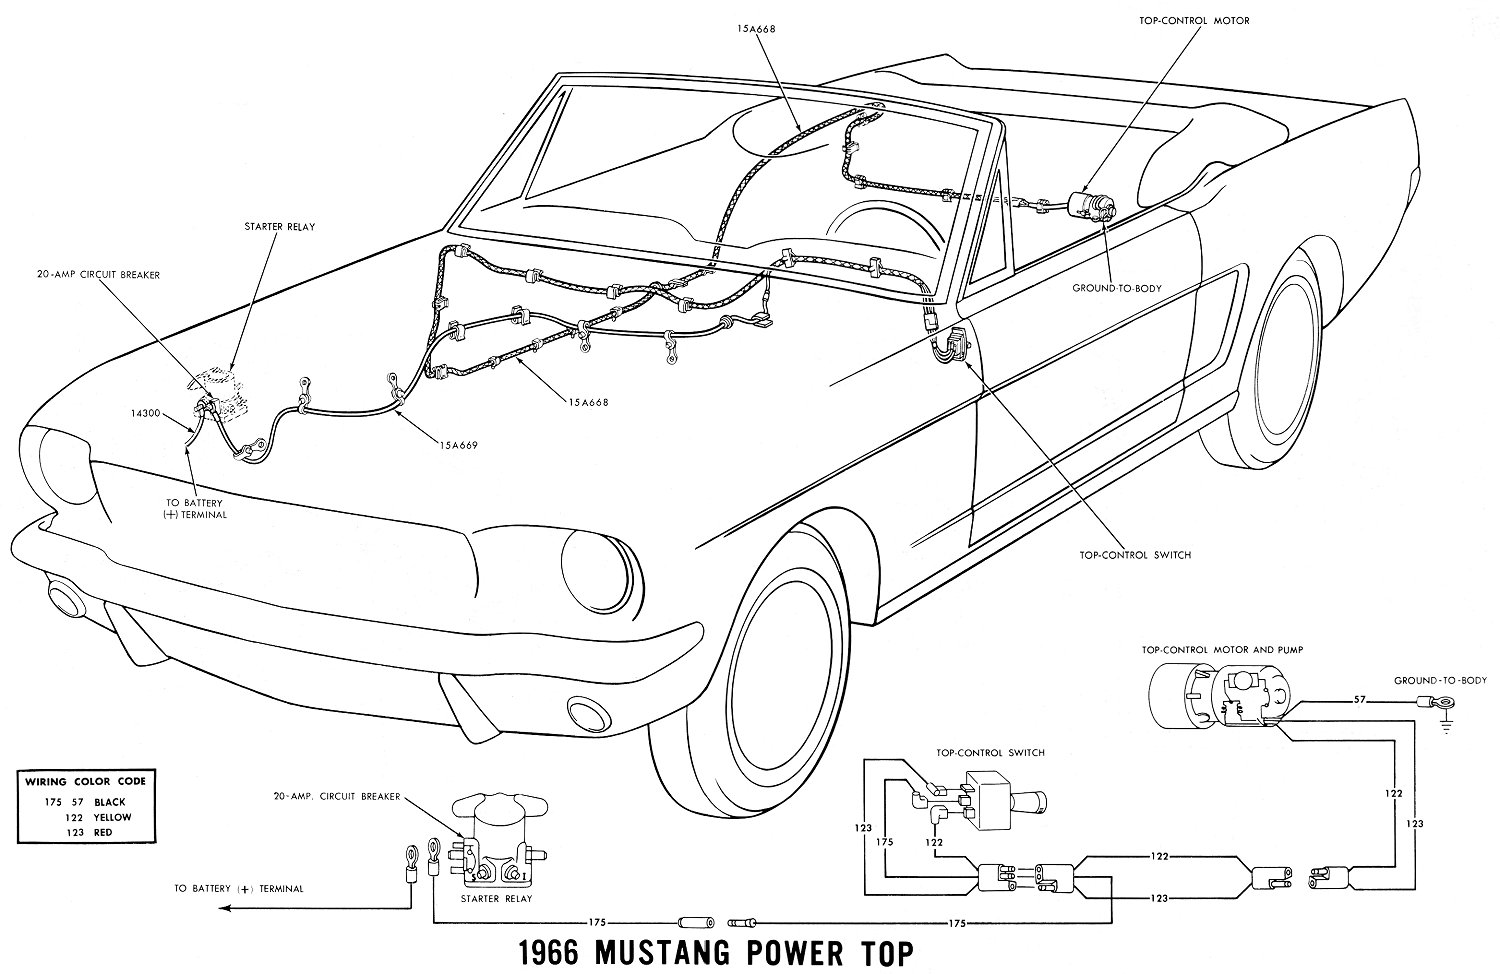 1966 Mustang Wiring Diagrams Average Joe Restoration Diagram On Corolla Alternator Externally Sm66pwr